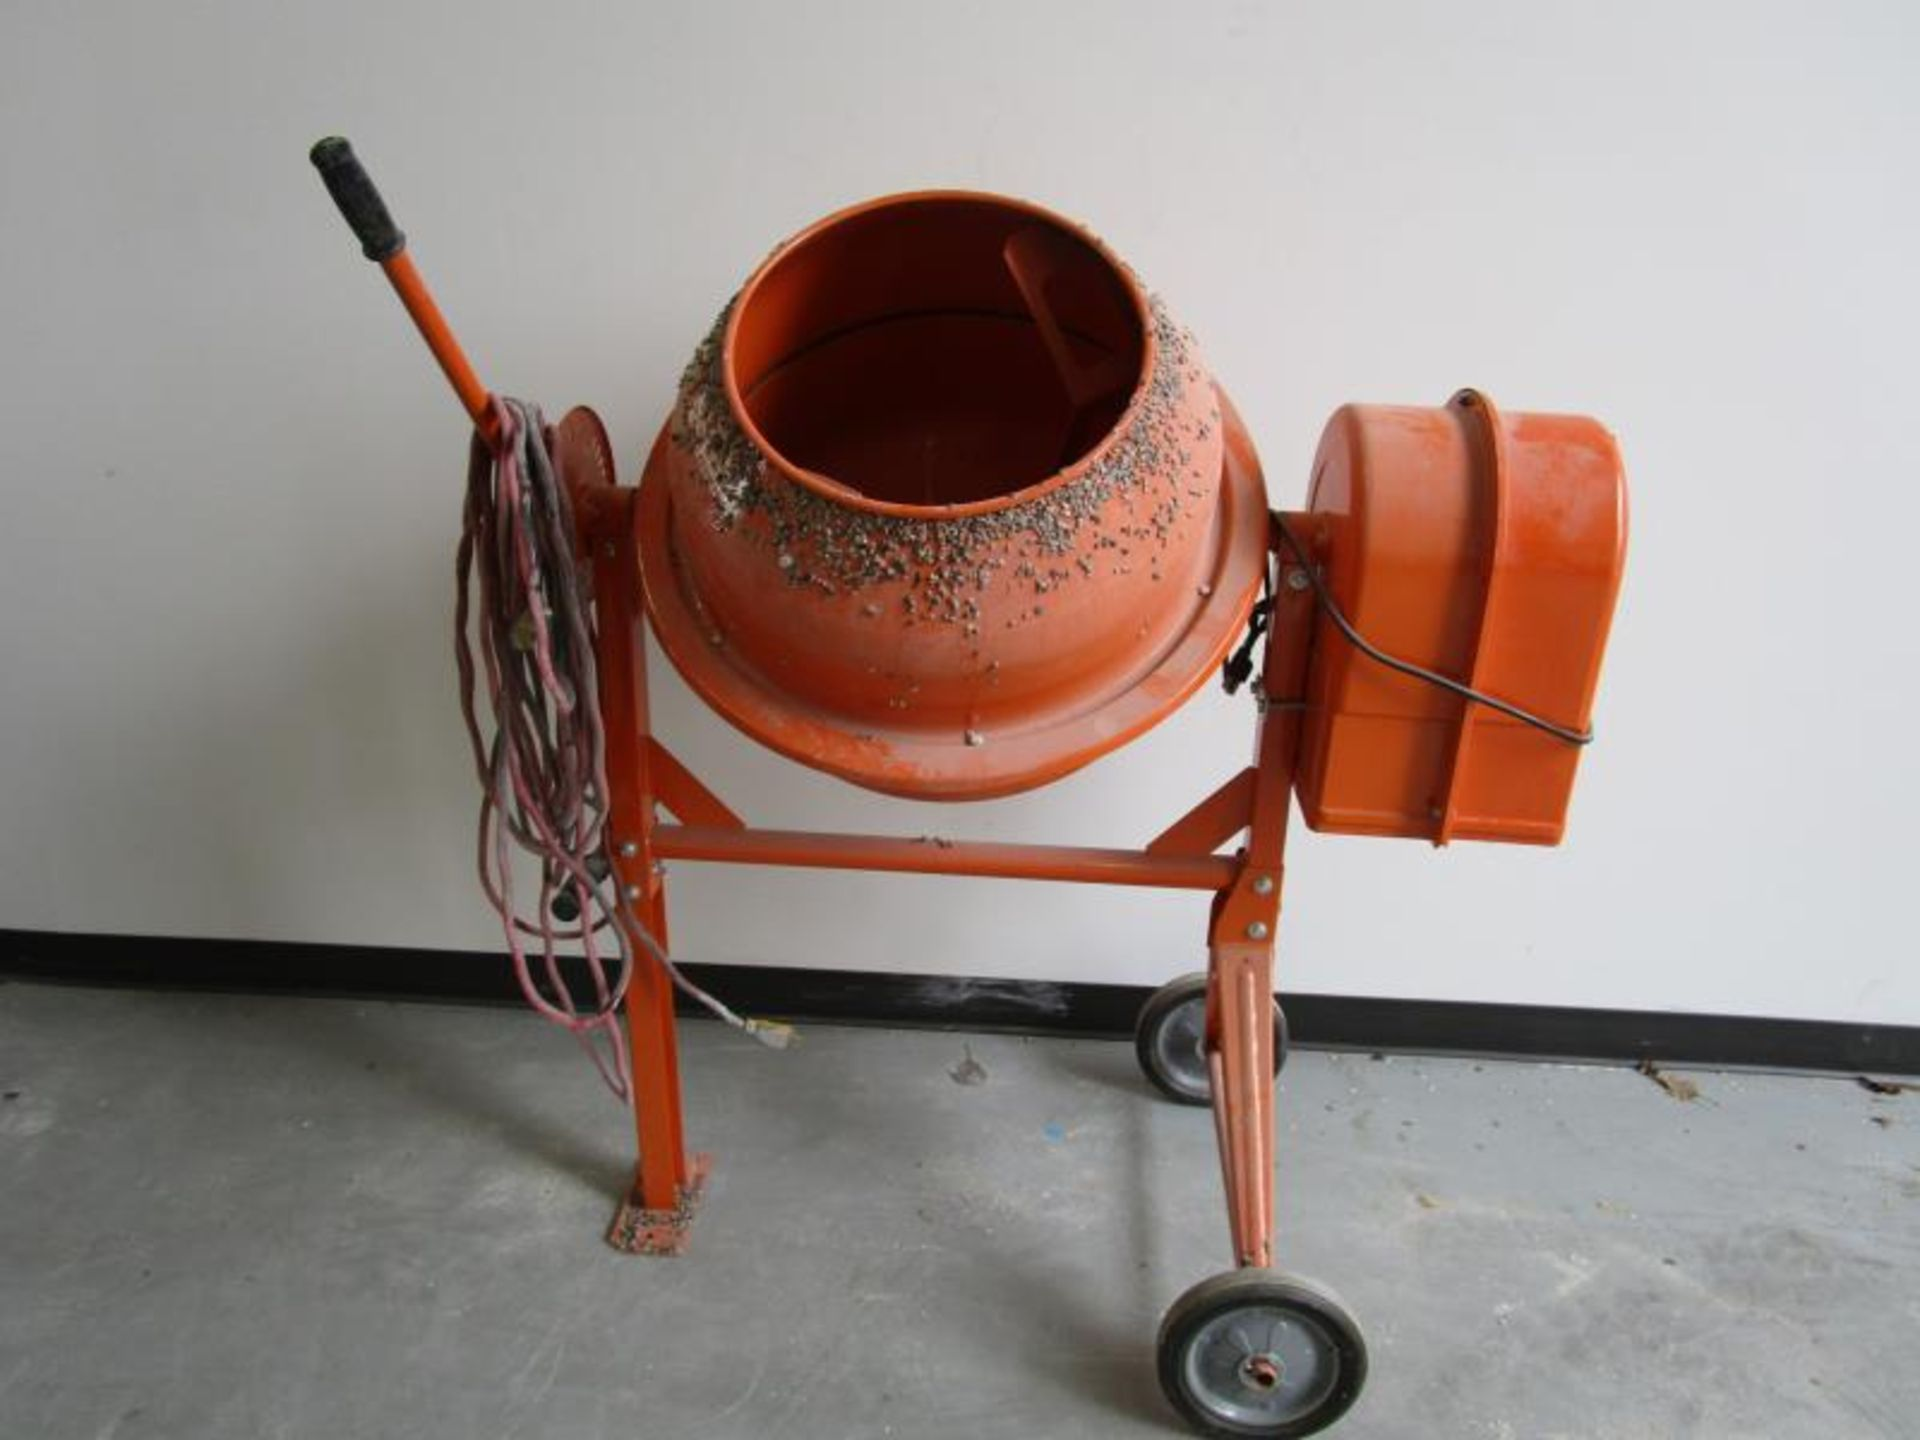 Lot 18 - Central Machinery 61932 Cement Mixer - 3-1/2 Cubic Ft